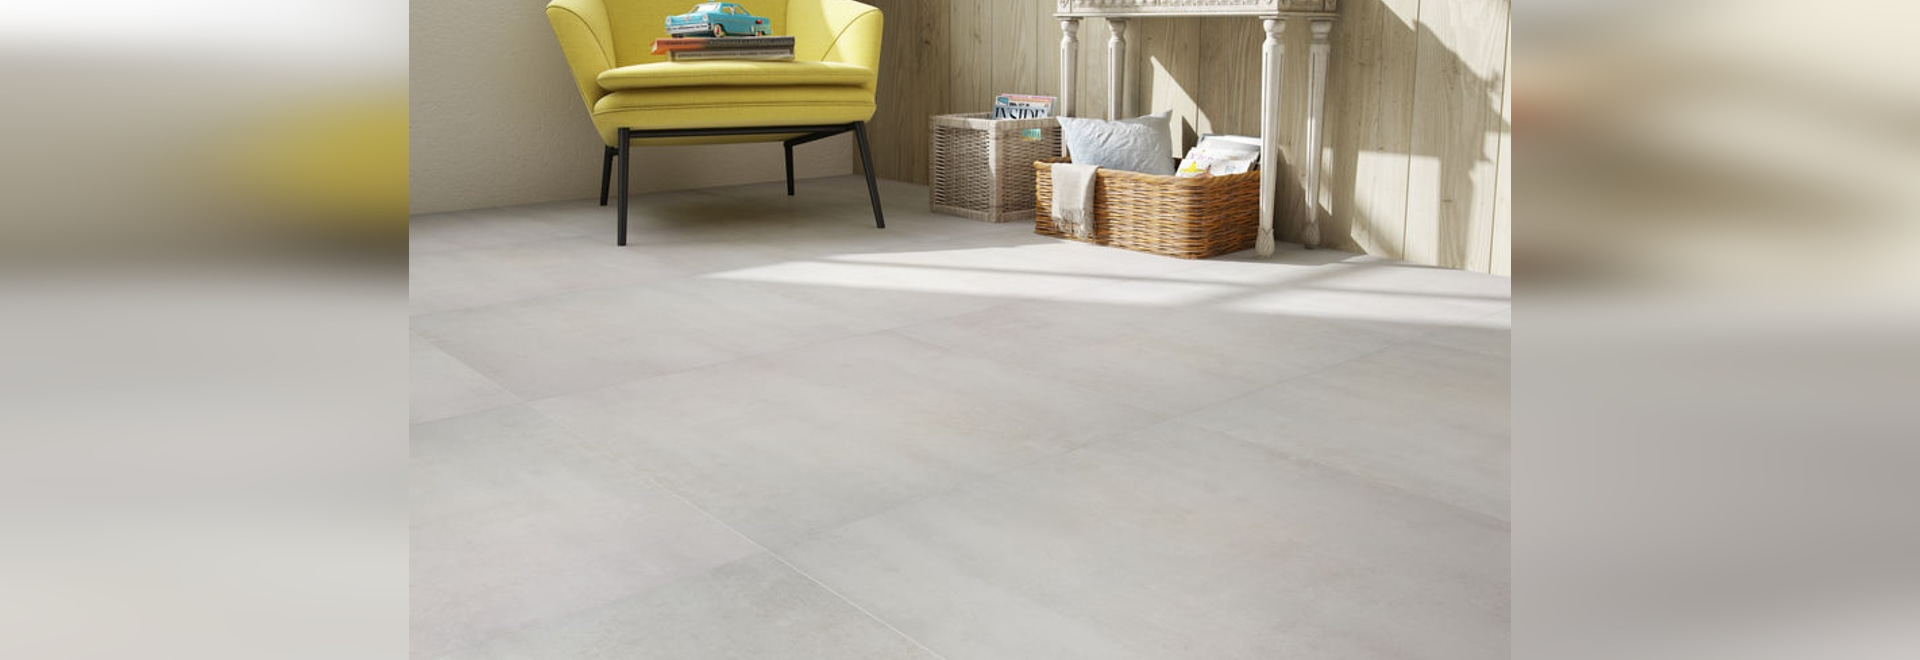 New Commercial Laminated Floor Tile By Faus